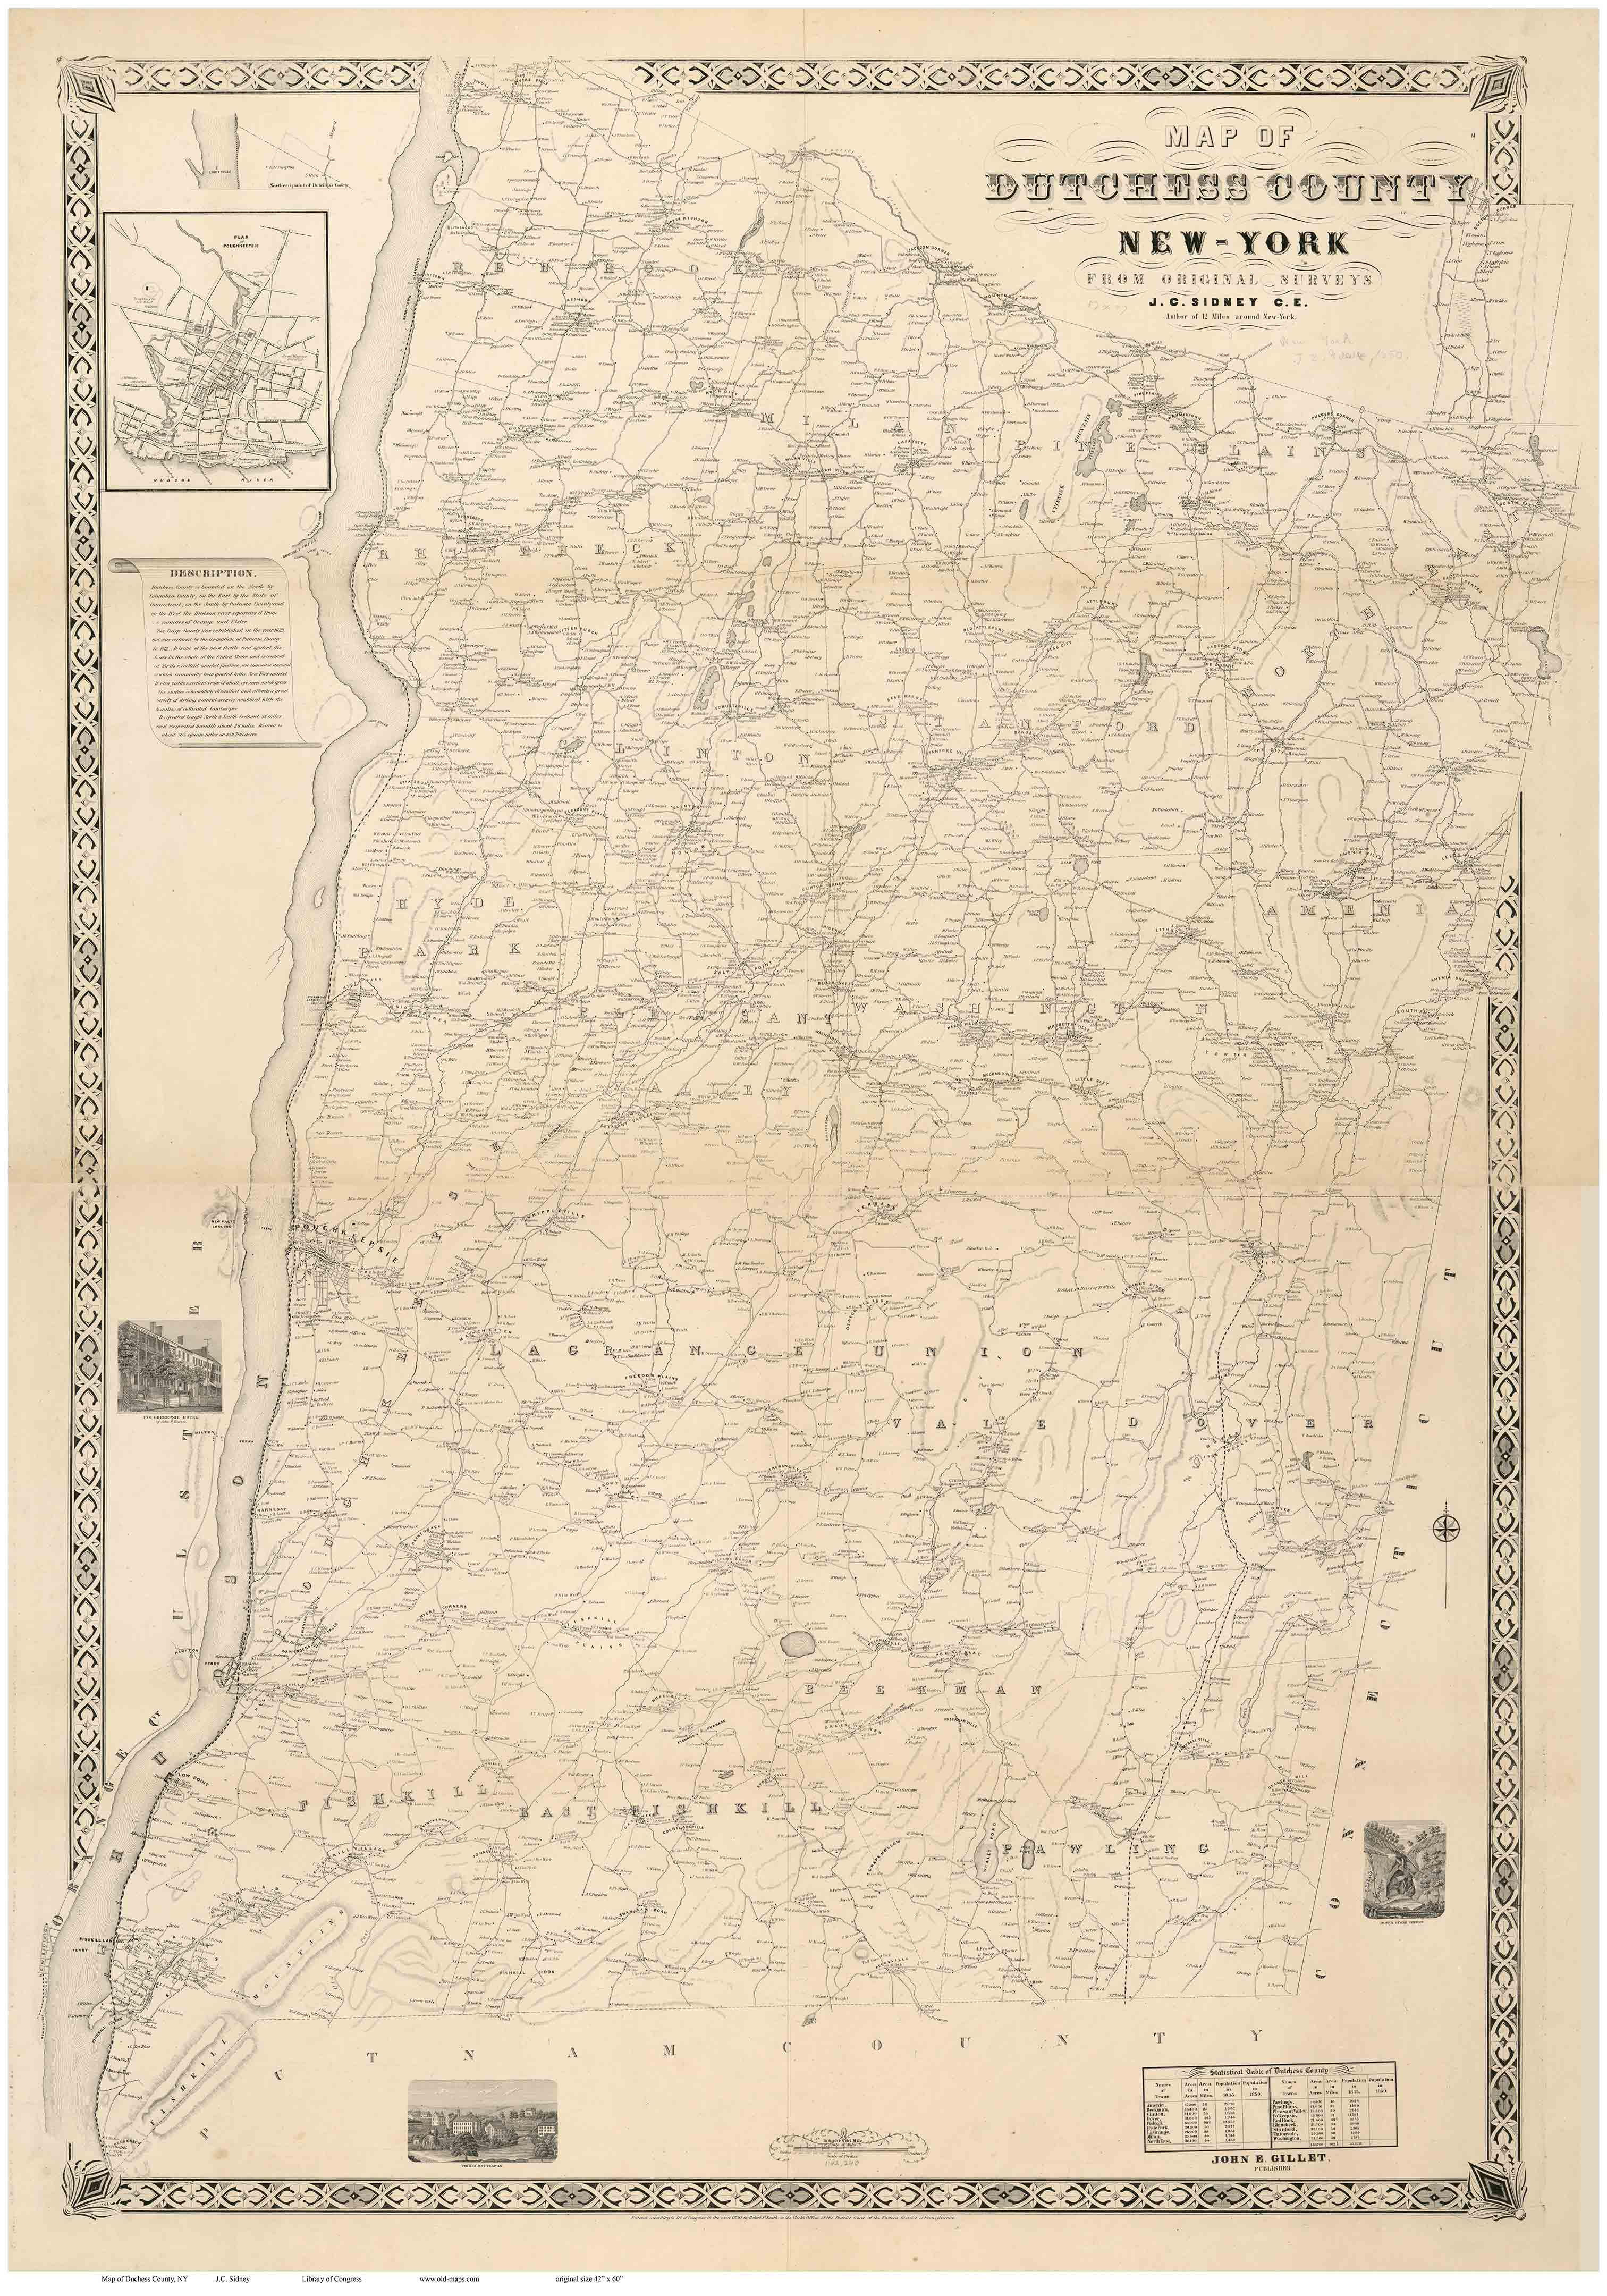 Dutchess County New York 1850 - Old Map Reprint - OLD MAPS  |New York Dutchess County Soils Maps